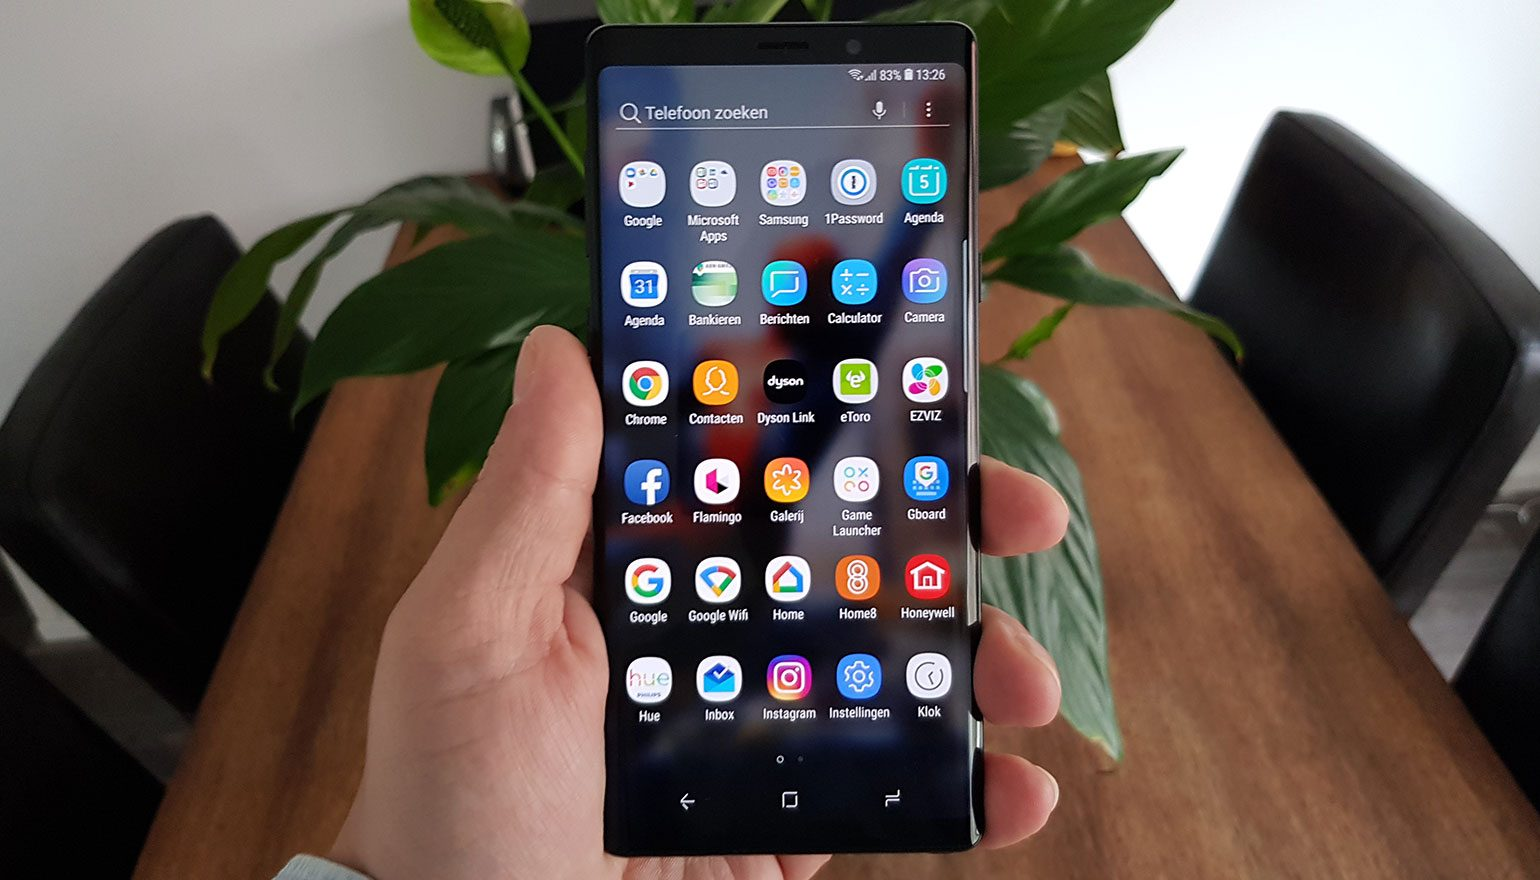 Android Pie will launch in January for Galaxy Note 9 and S9